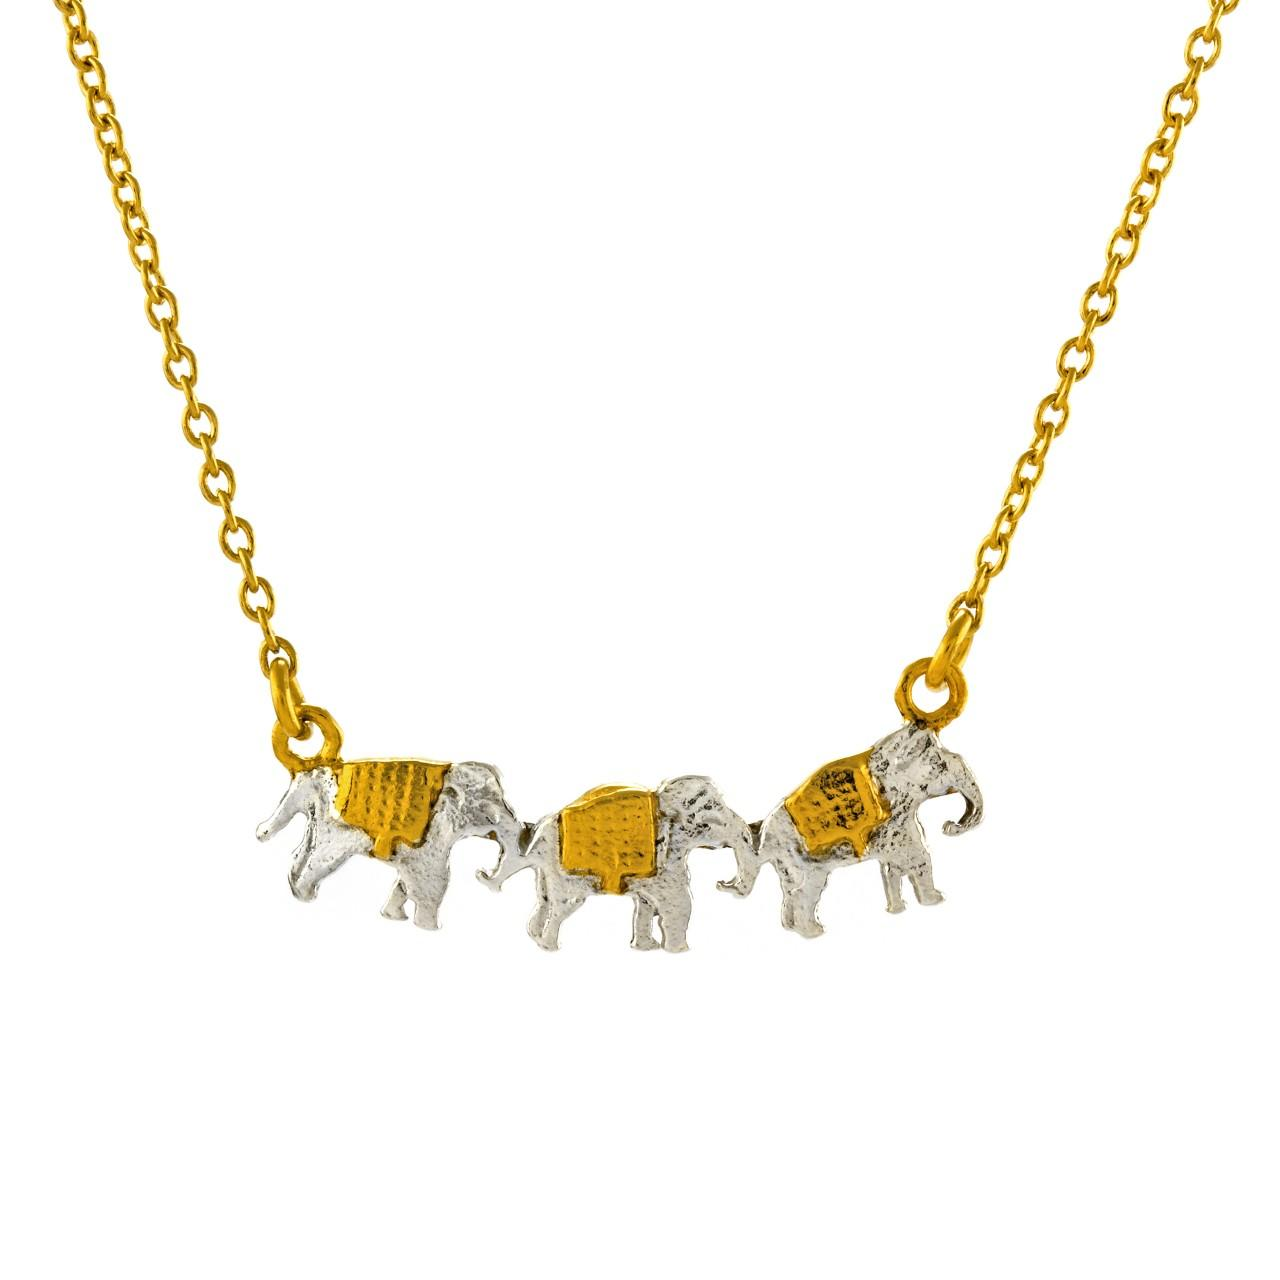 Silver and gold plated marching elephants necklace £135 (available in store only)